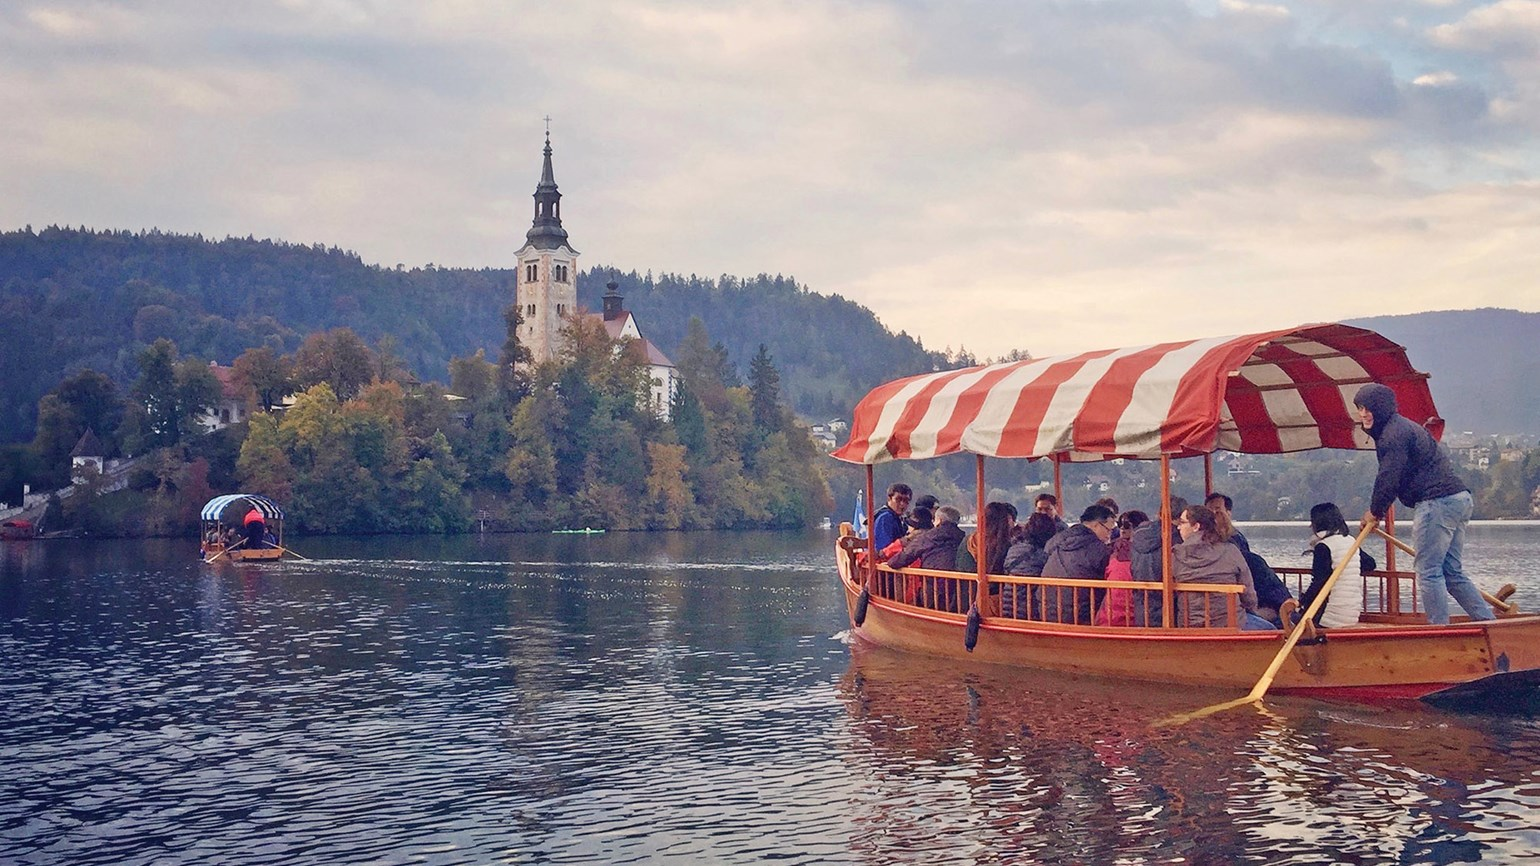 Quaint but modern, Slovenia captures imaginations